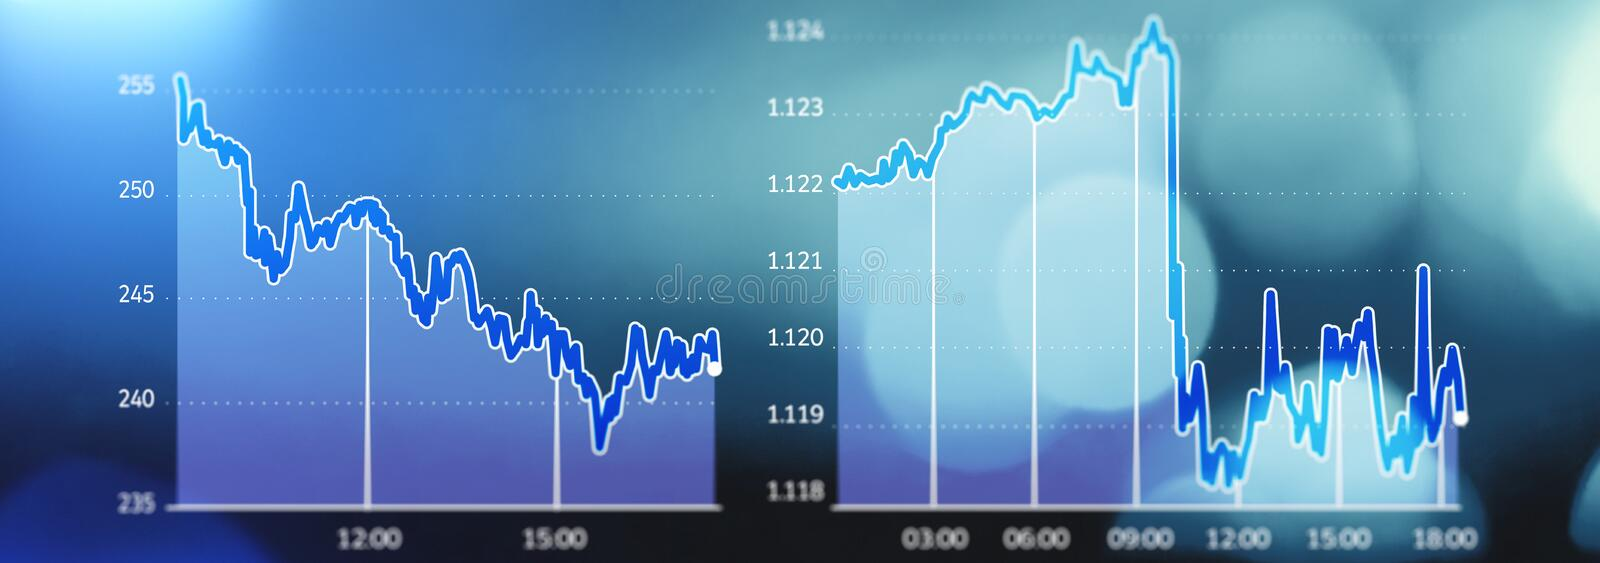 Stock market trends, market crash, lost earnings, bankrupt. Graphic display of market shares in free fall. Blue background. Europe Economy royalty free illustration